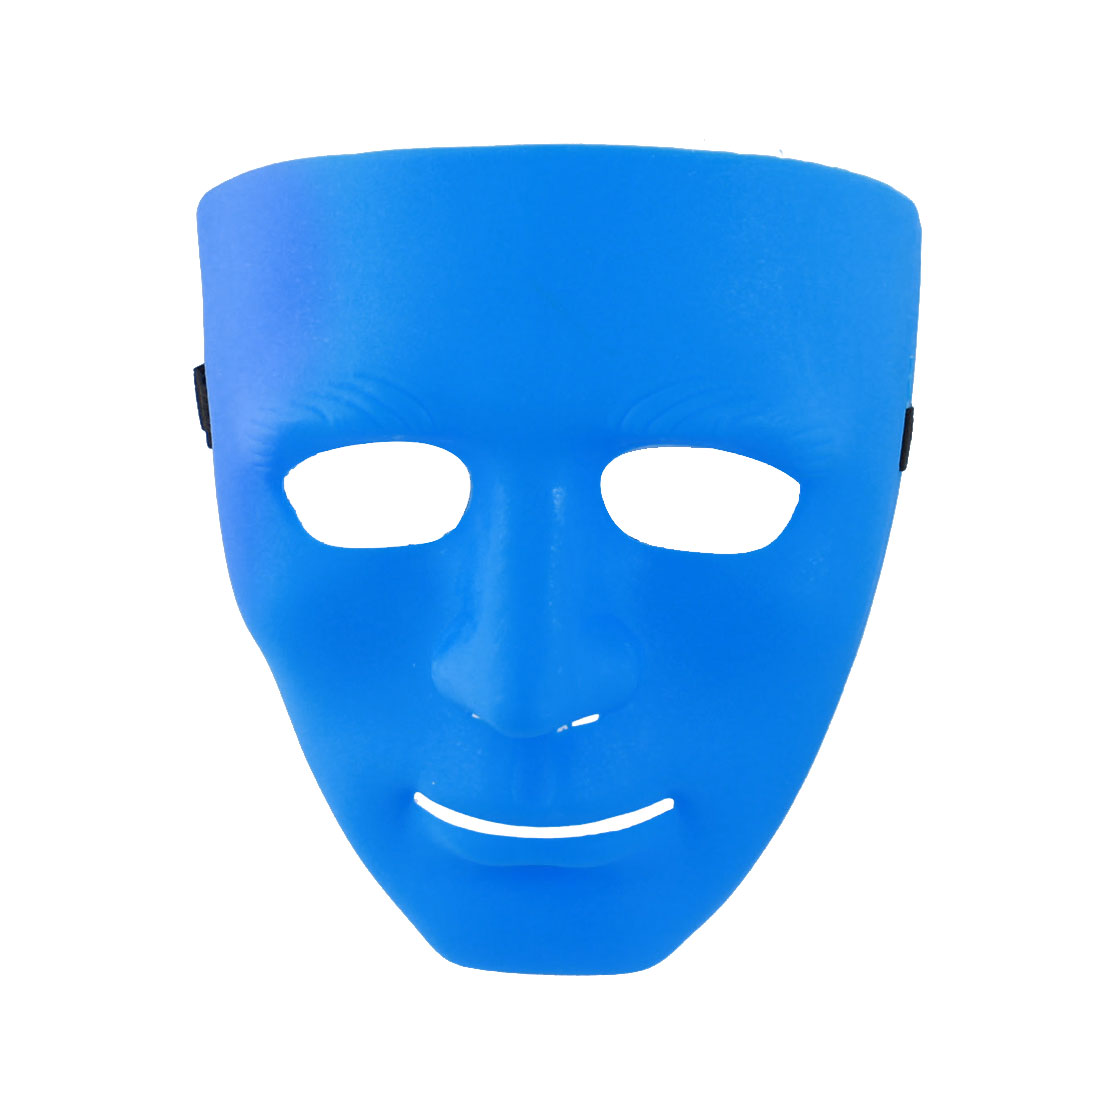 Blue Adjustable Airsoft War Game Full Face Plastic Plain Mask for Men